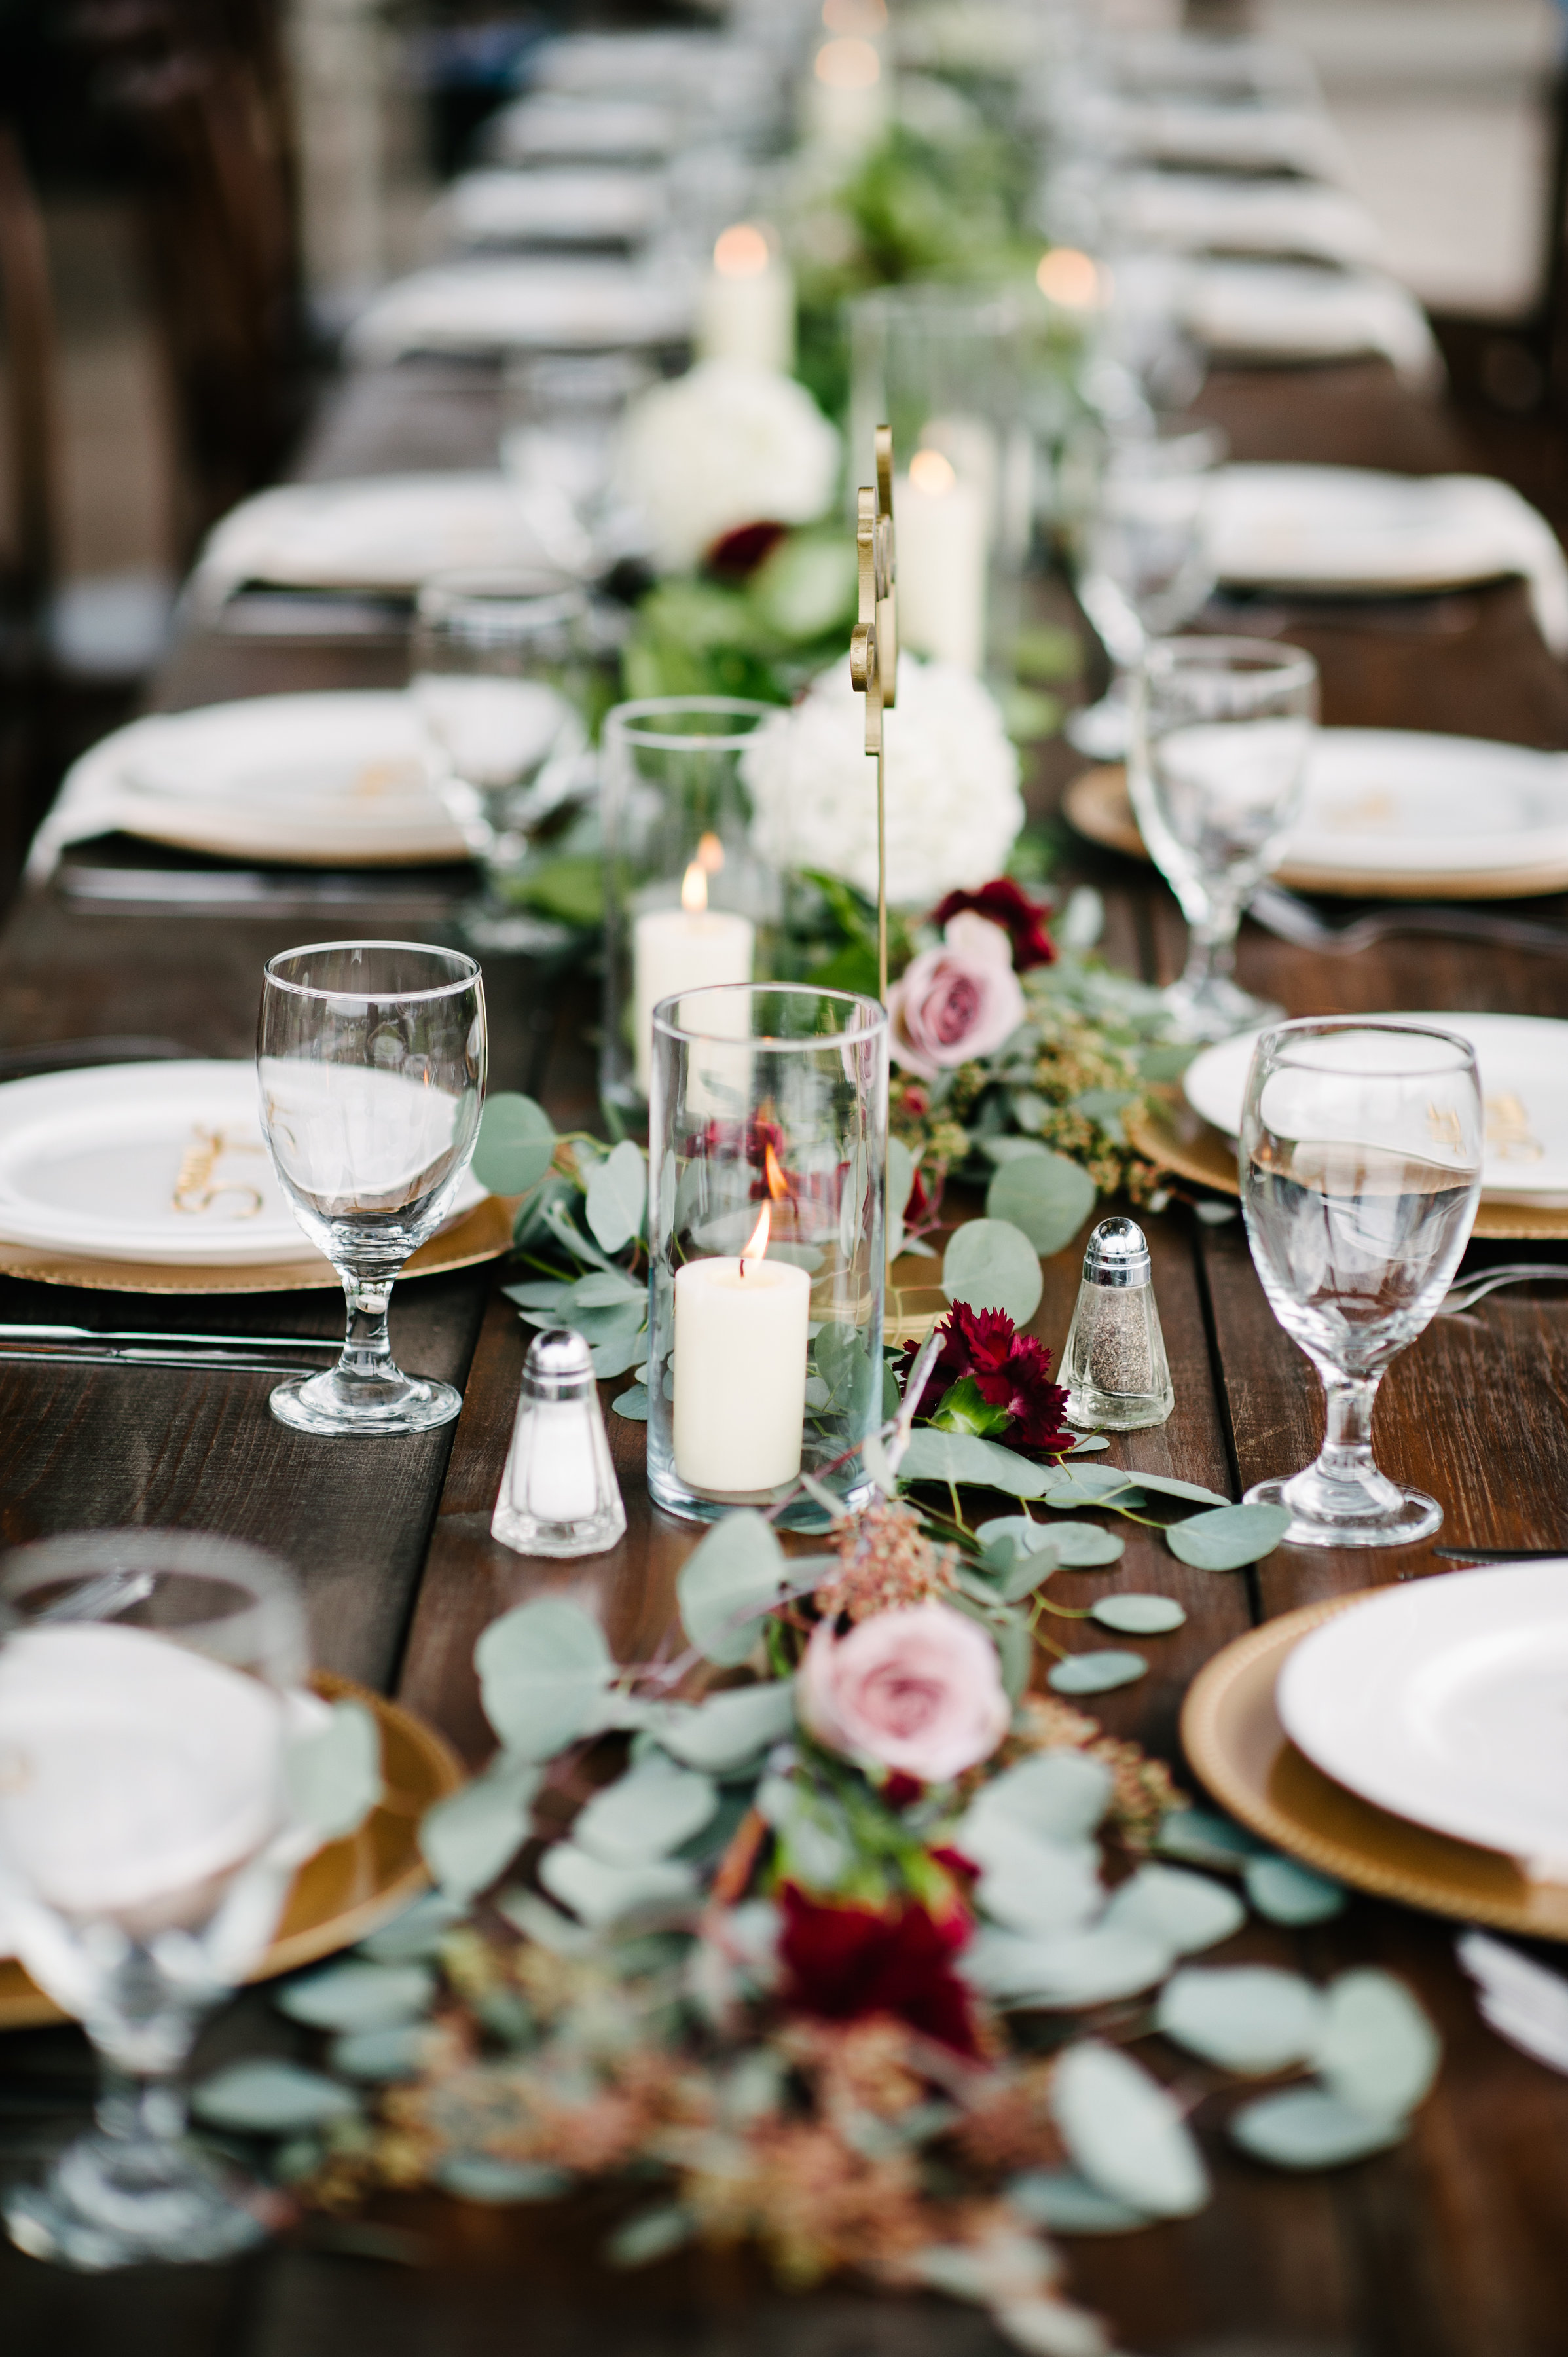 Reception banquet tables lined with candles, blush roses and greenery